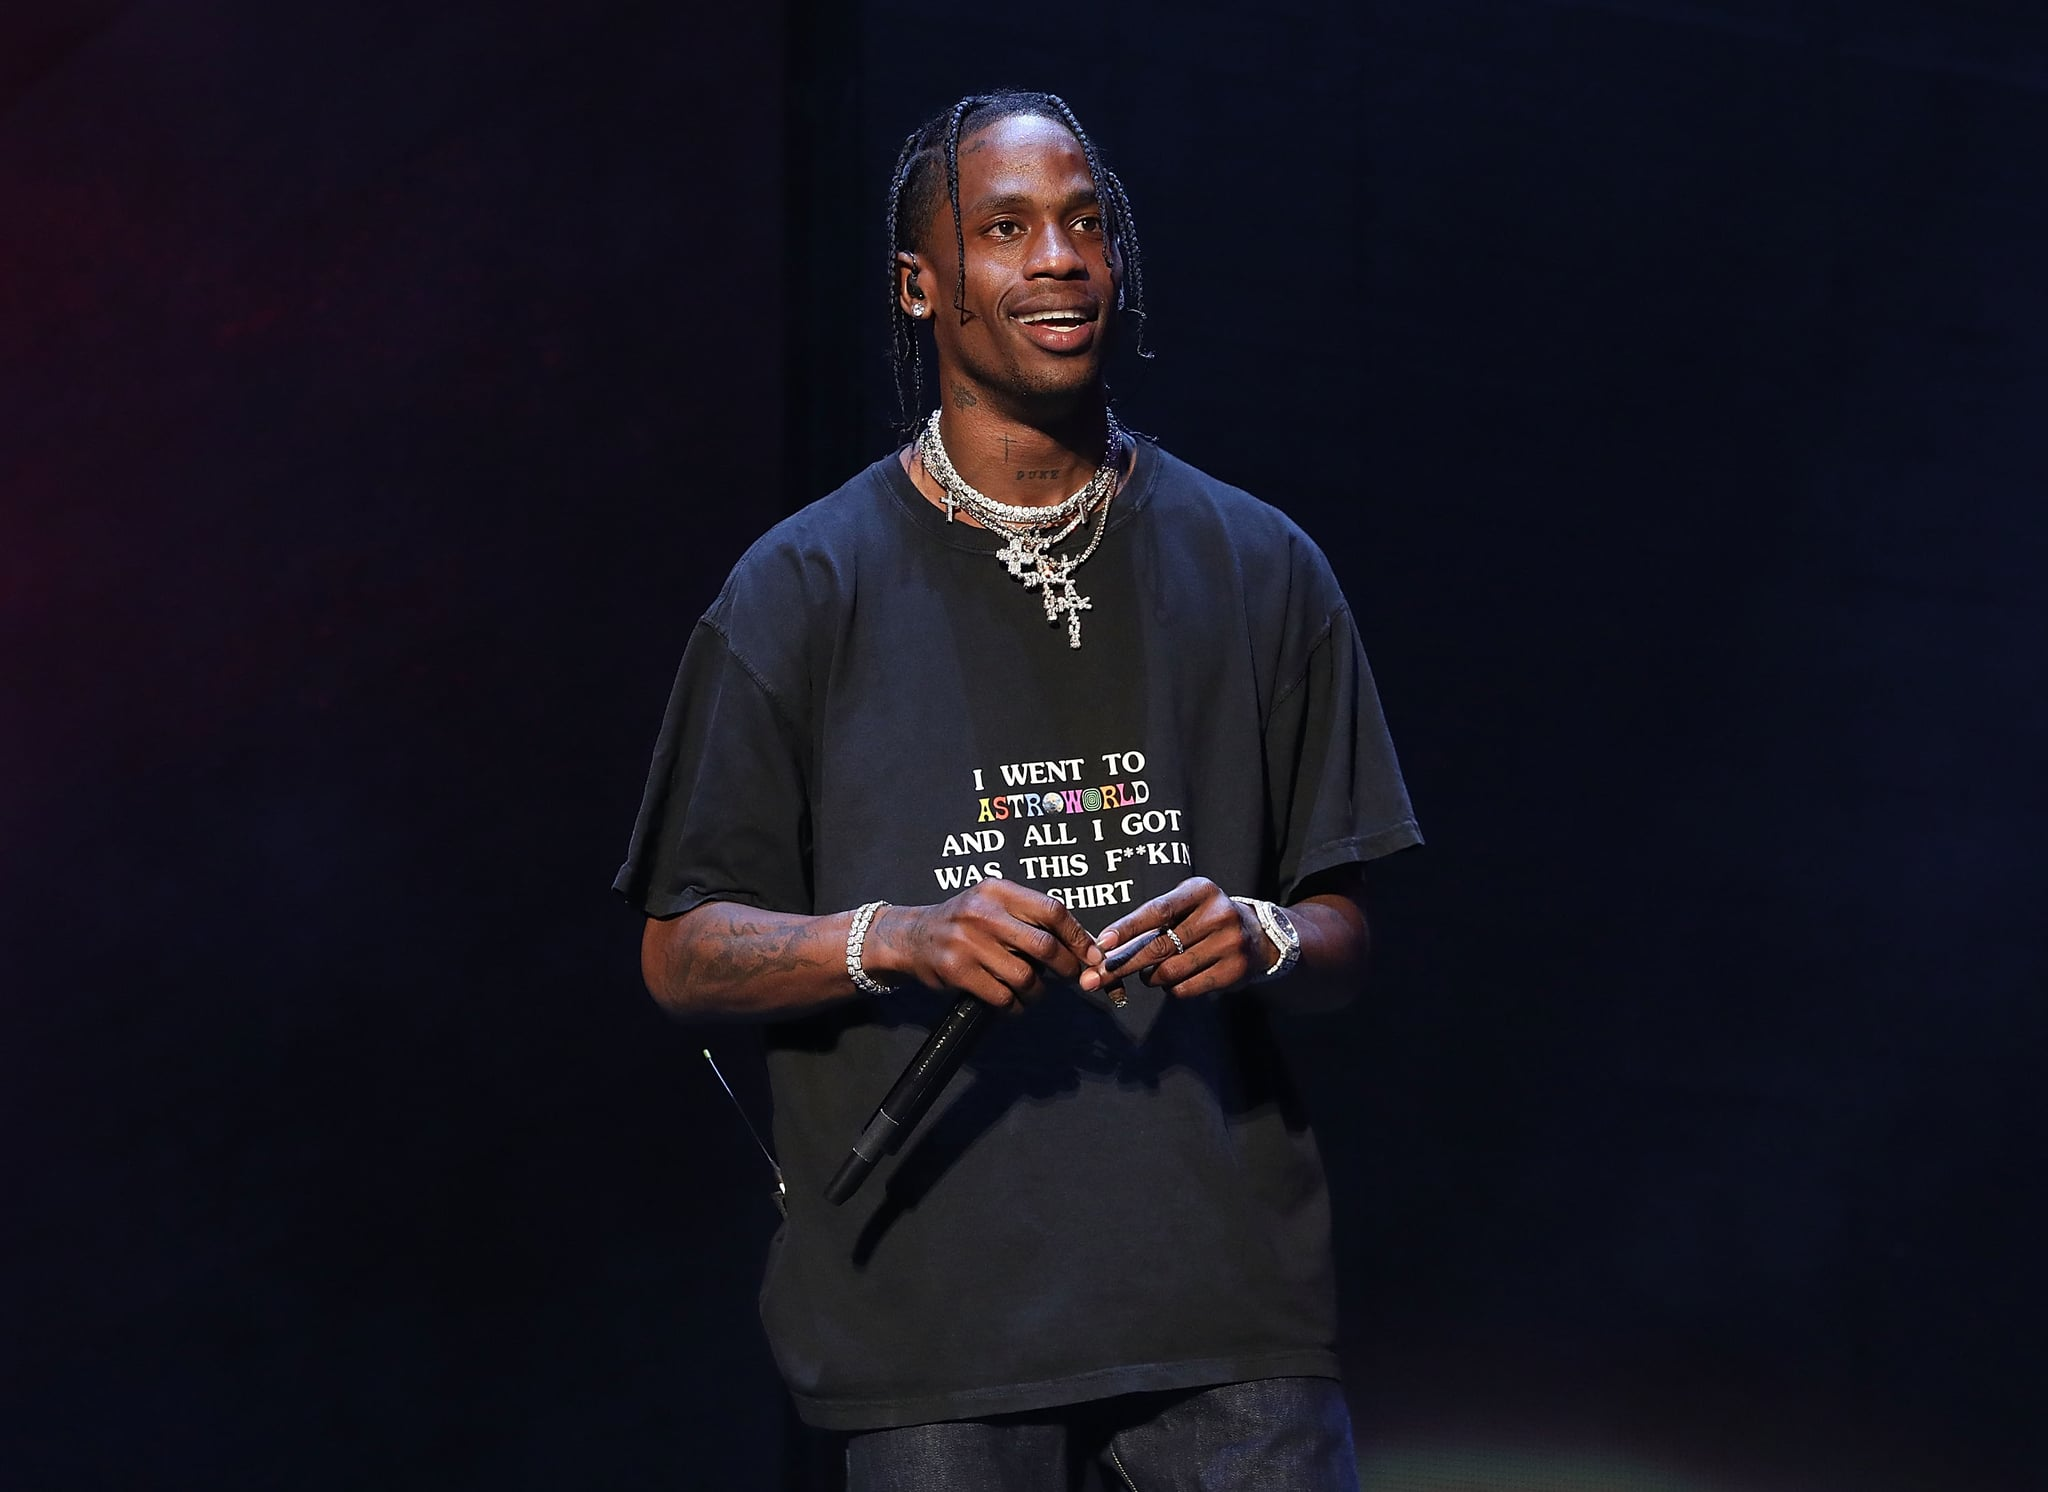 NEW YORK, NY - JUNE 02:  Travis Scott performs onstage during Day 2 of 2018 Governors Ball Music Festival at Randall's Island on June 2, 2018 in New York City.  (Photo by Taylor Hill/Getty Images for Governors Ball)